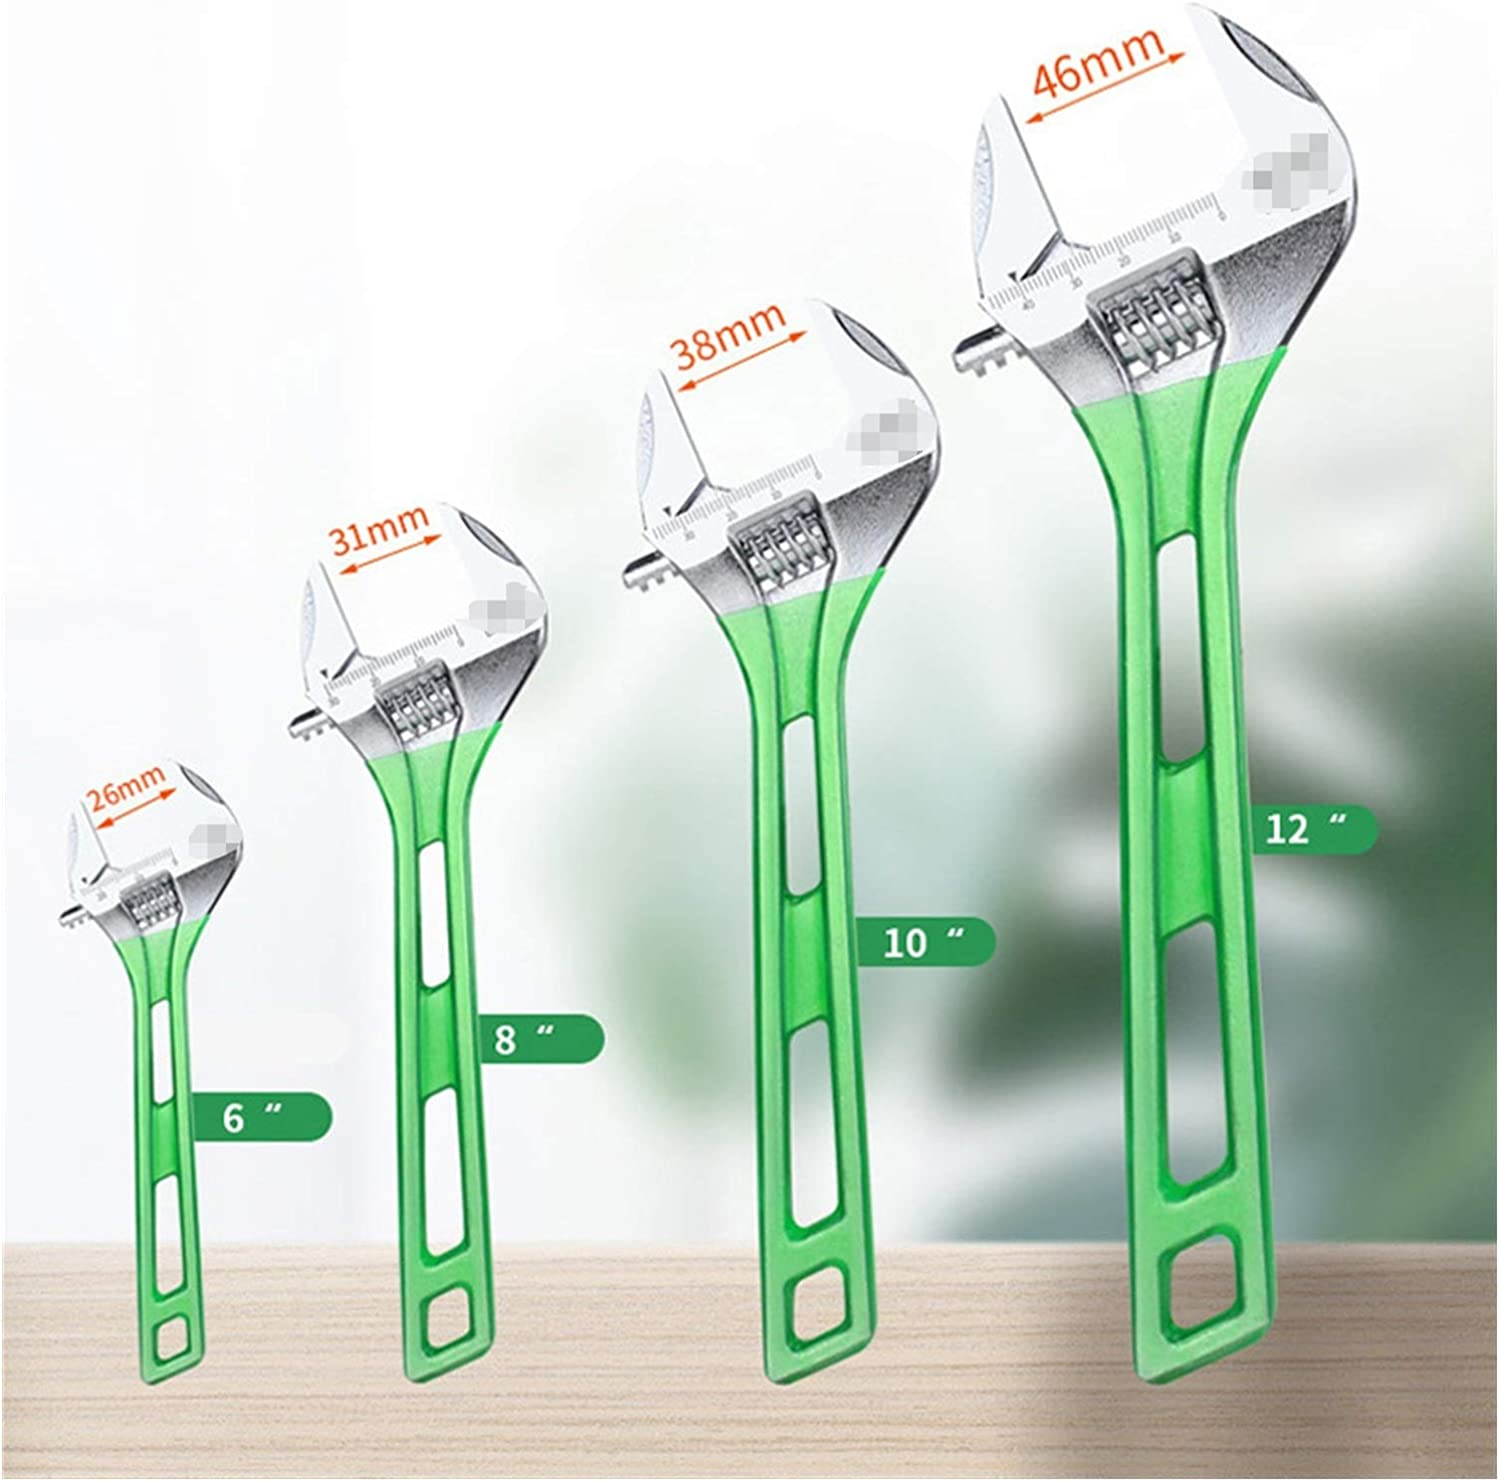 Color : 12inch LA320712 Without Socket Wrench Mechanic Tool Set Portable Wrench Large Open Adjustable Spanner 6inch 8inch 10inch 12inch Wrench Tools ousehold Maintenance Tool